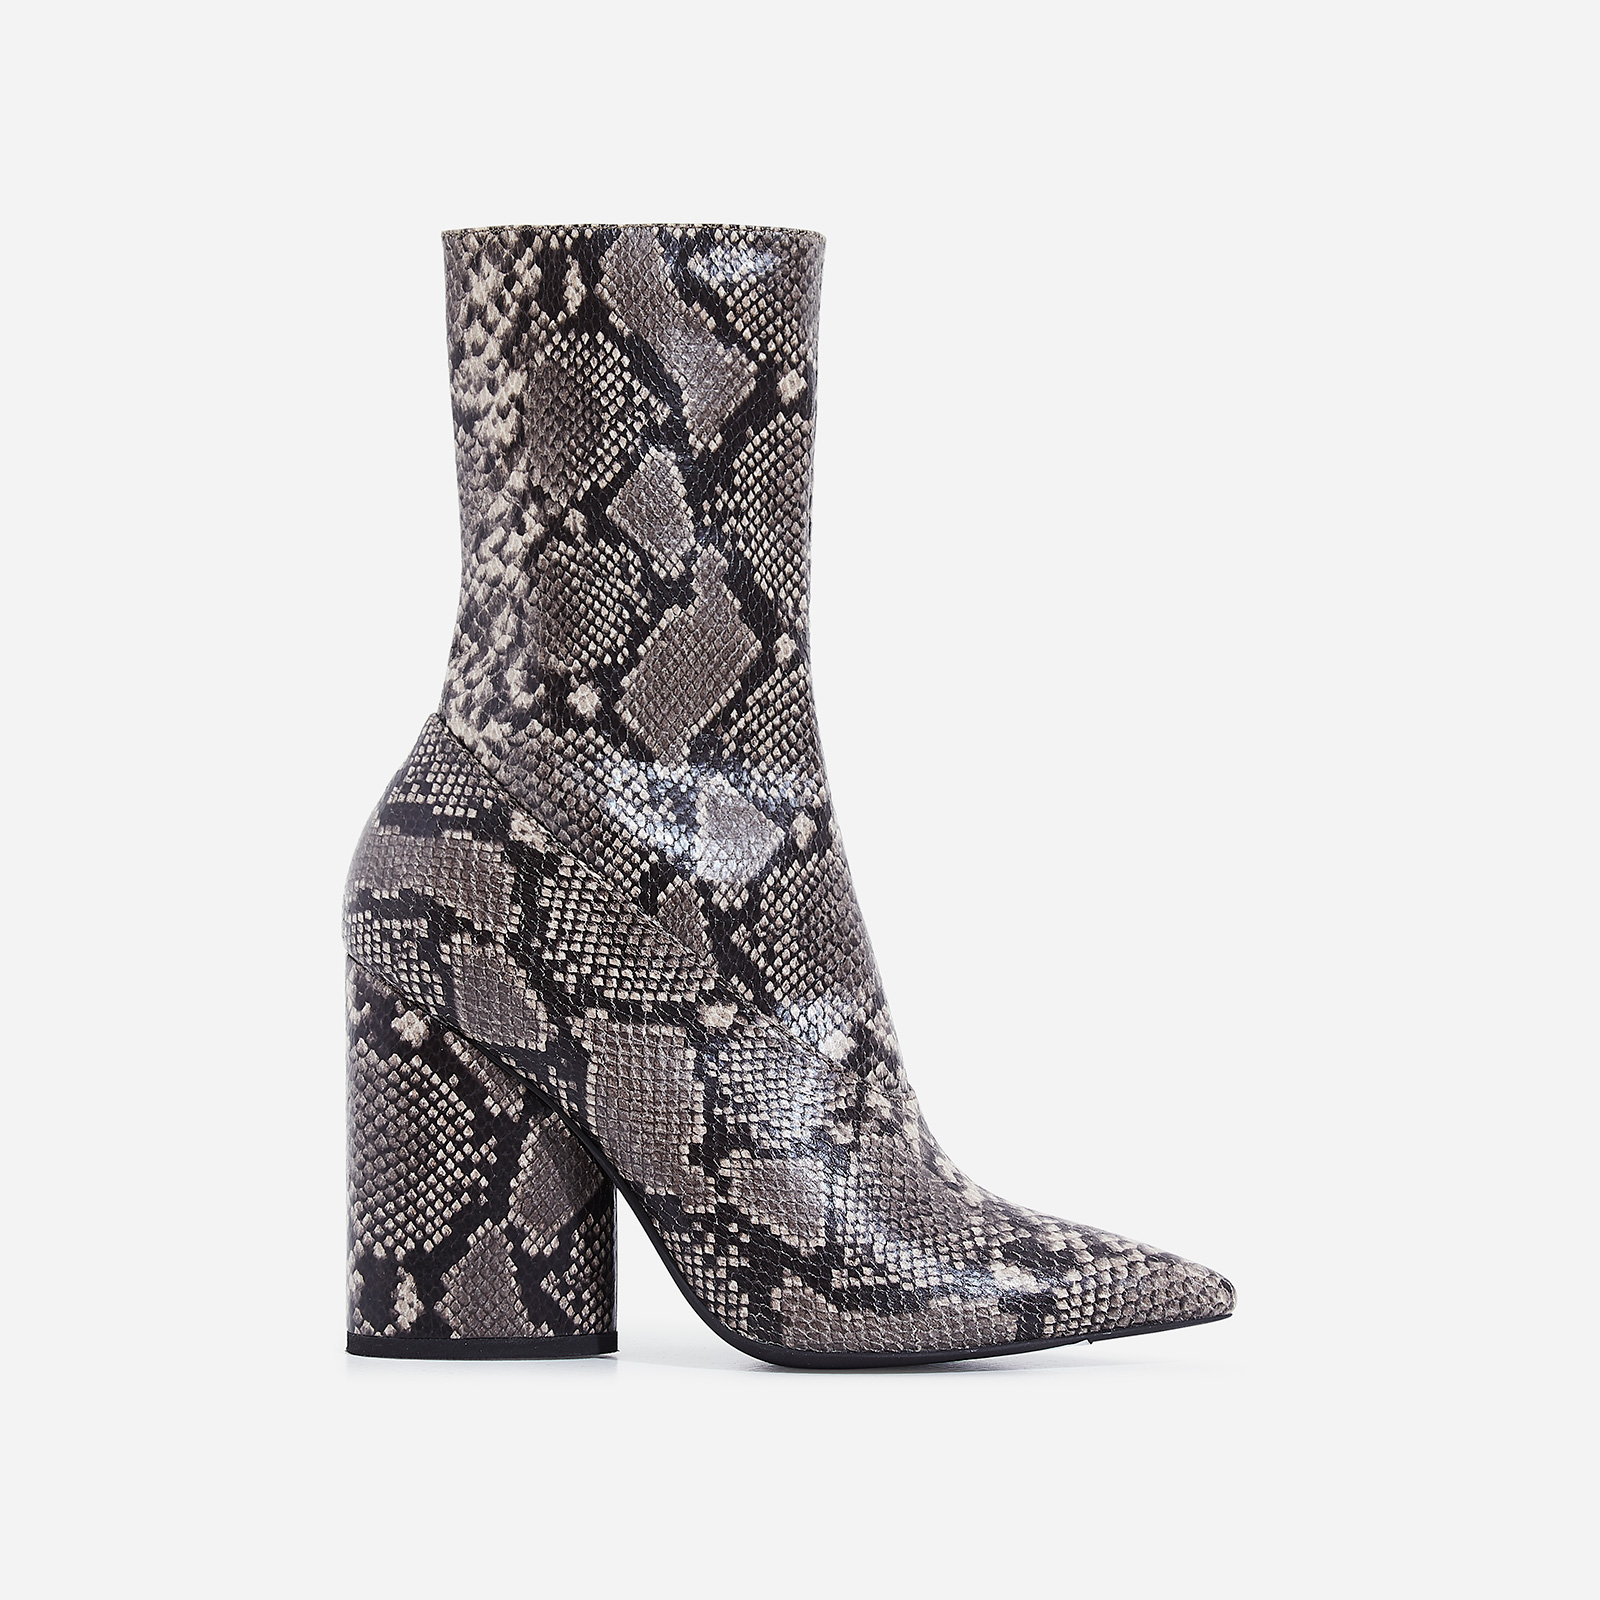 Ameera Block Heel Pointed Ankle Boot In Khaki Snake Print Faux Leather